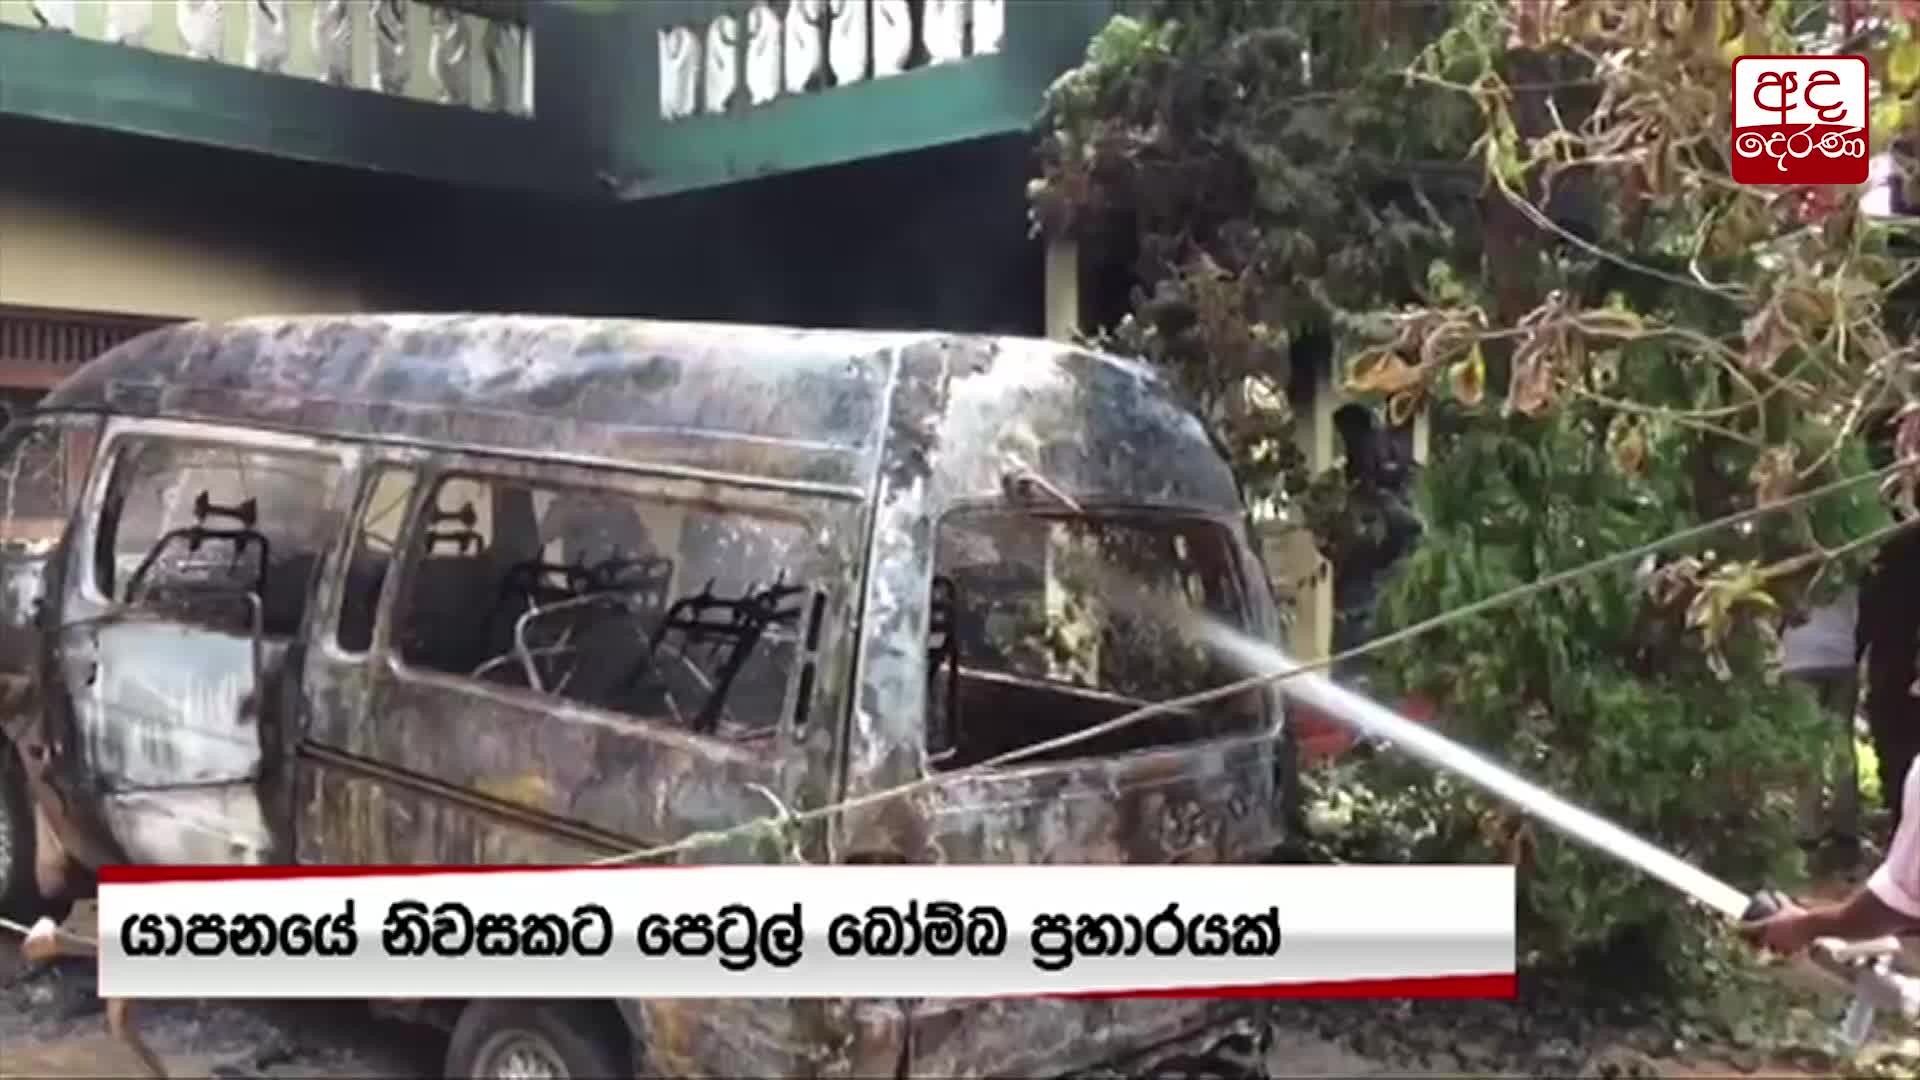 House in Jaffna petrol-bombed